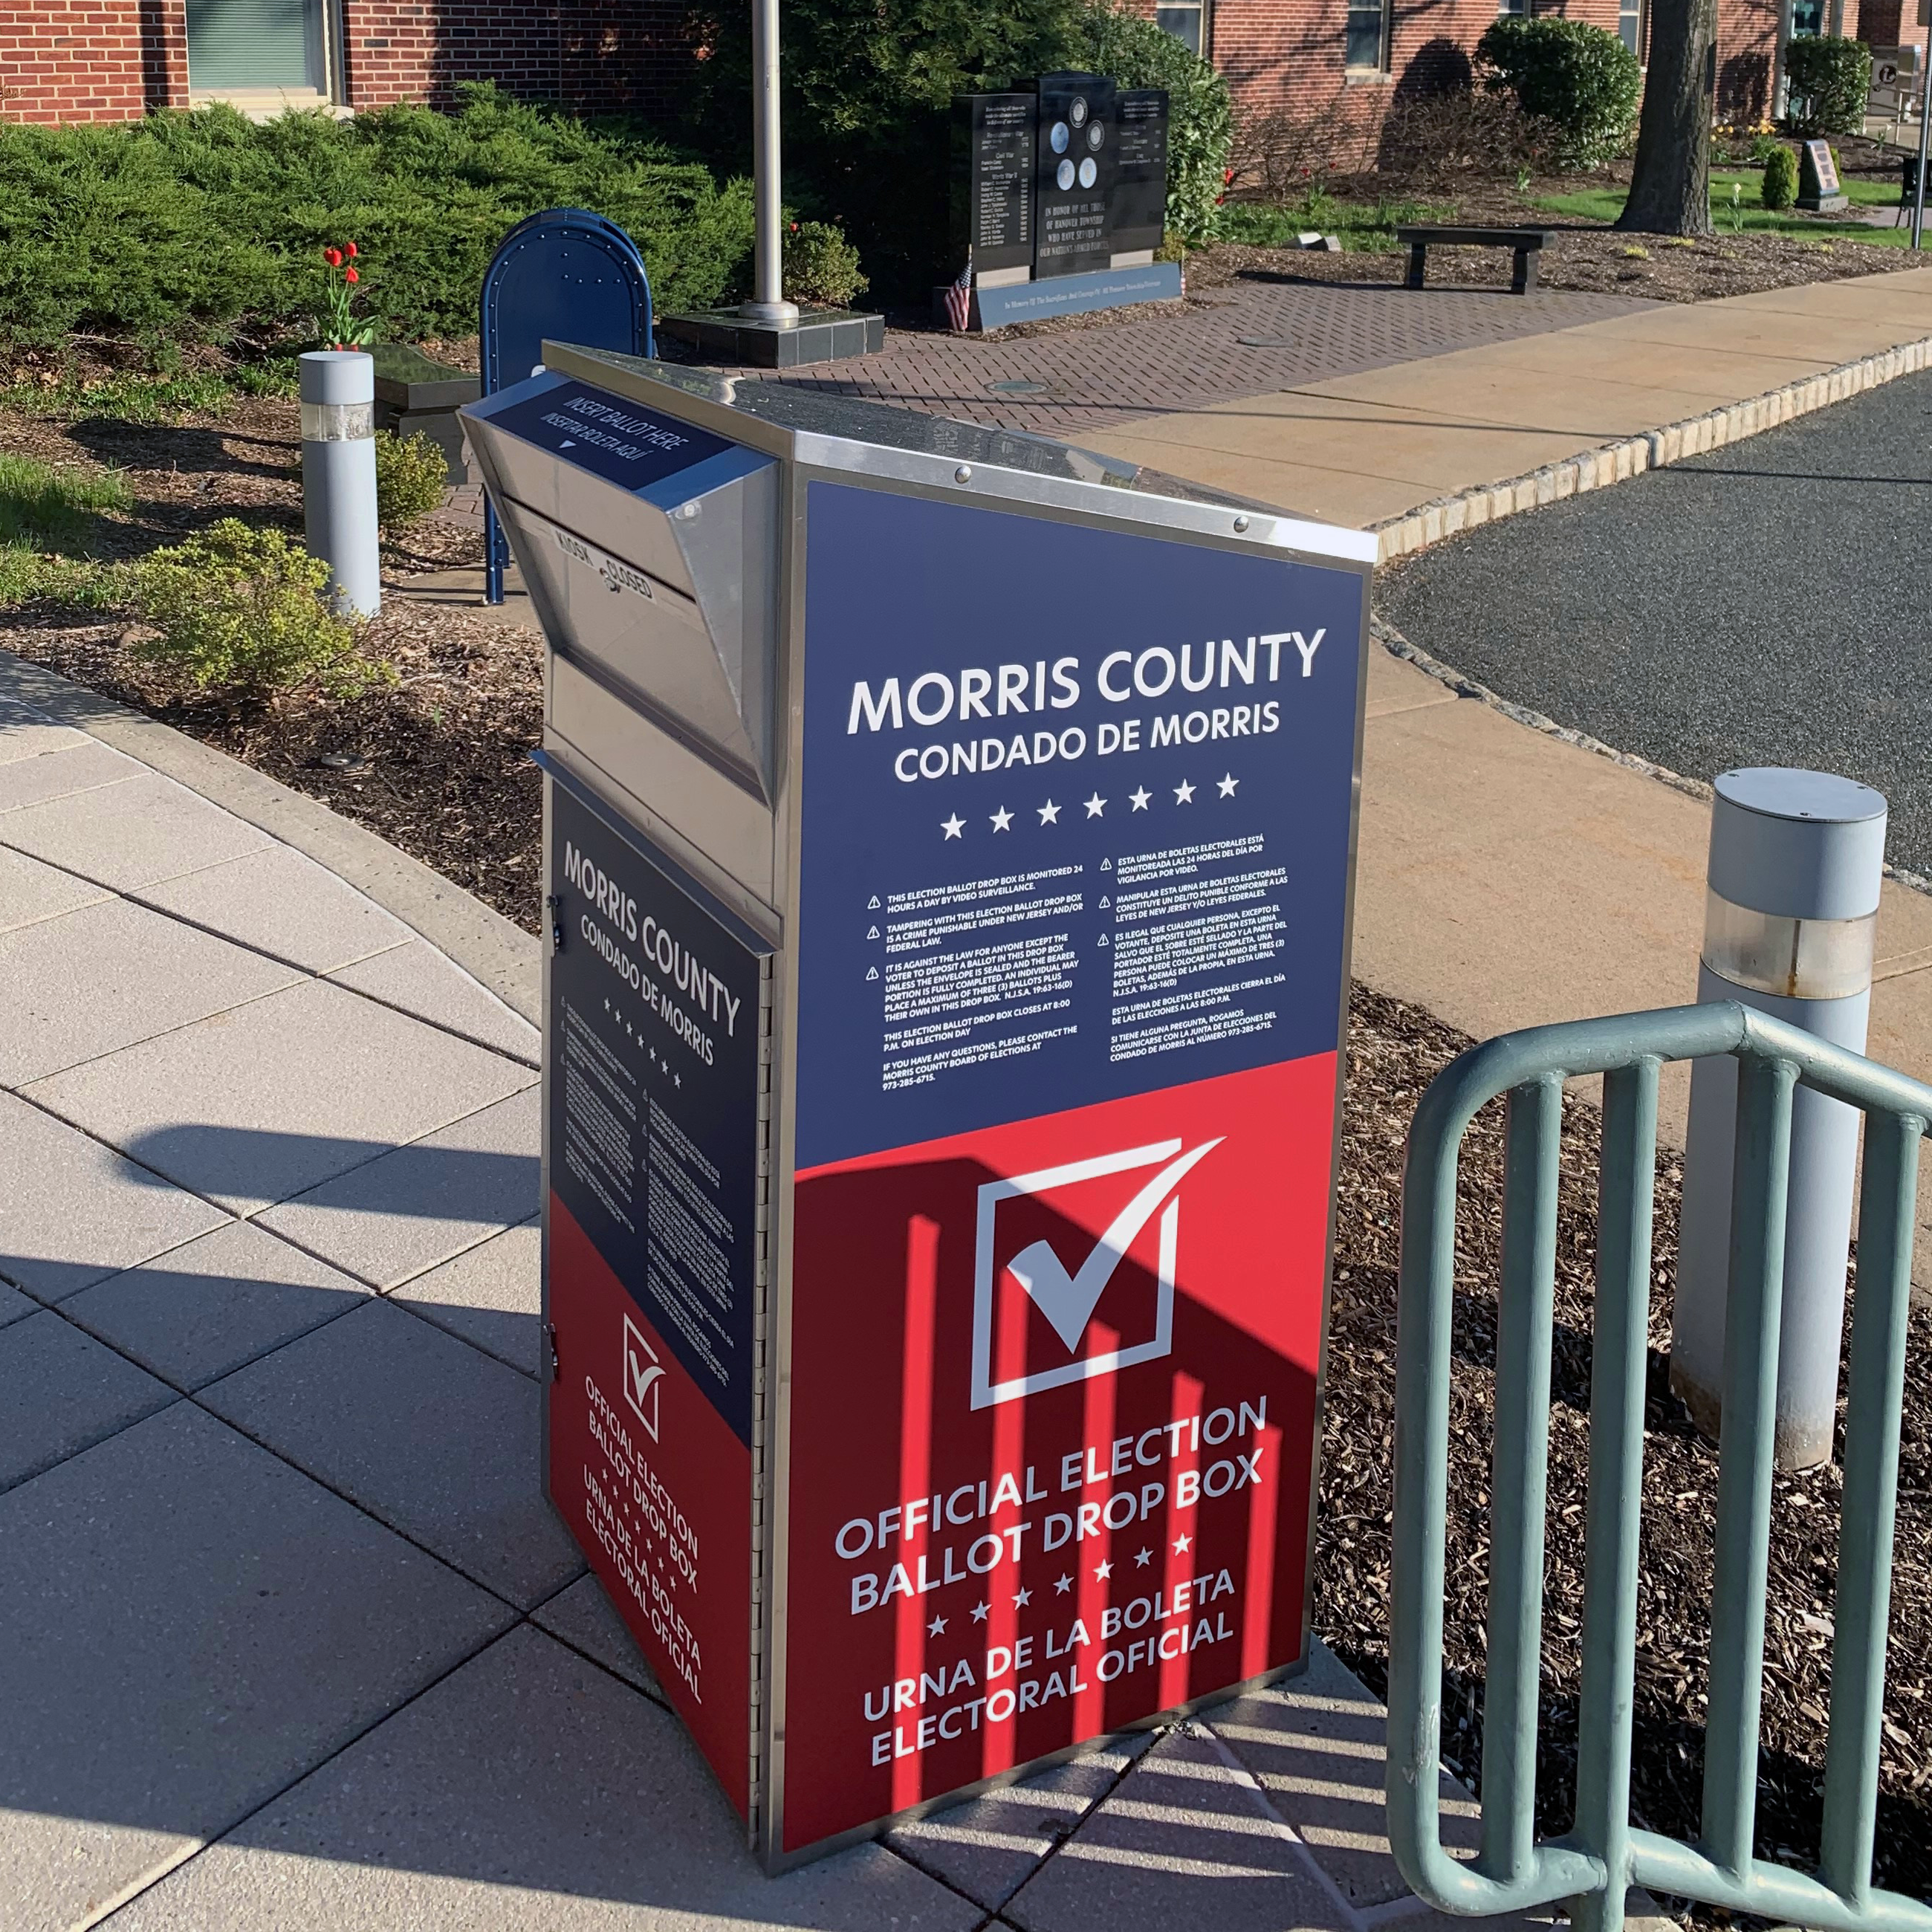 Election Drop Box